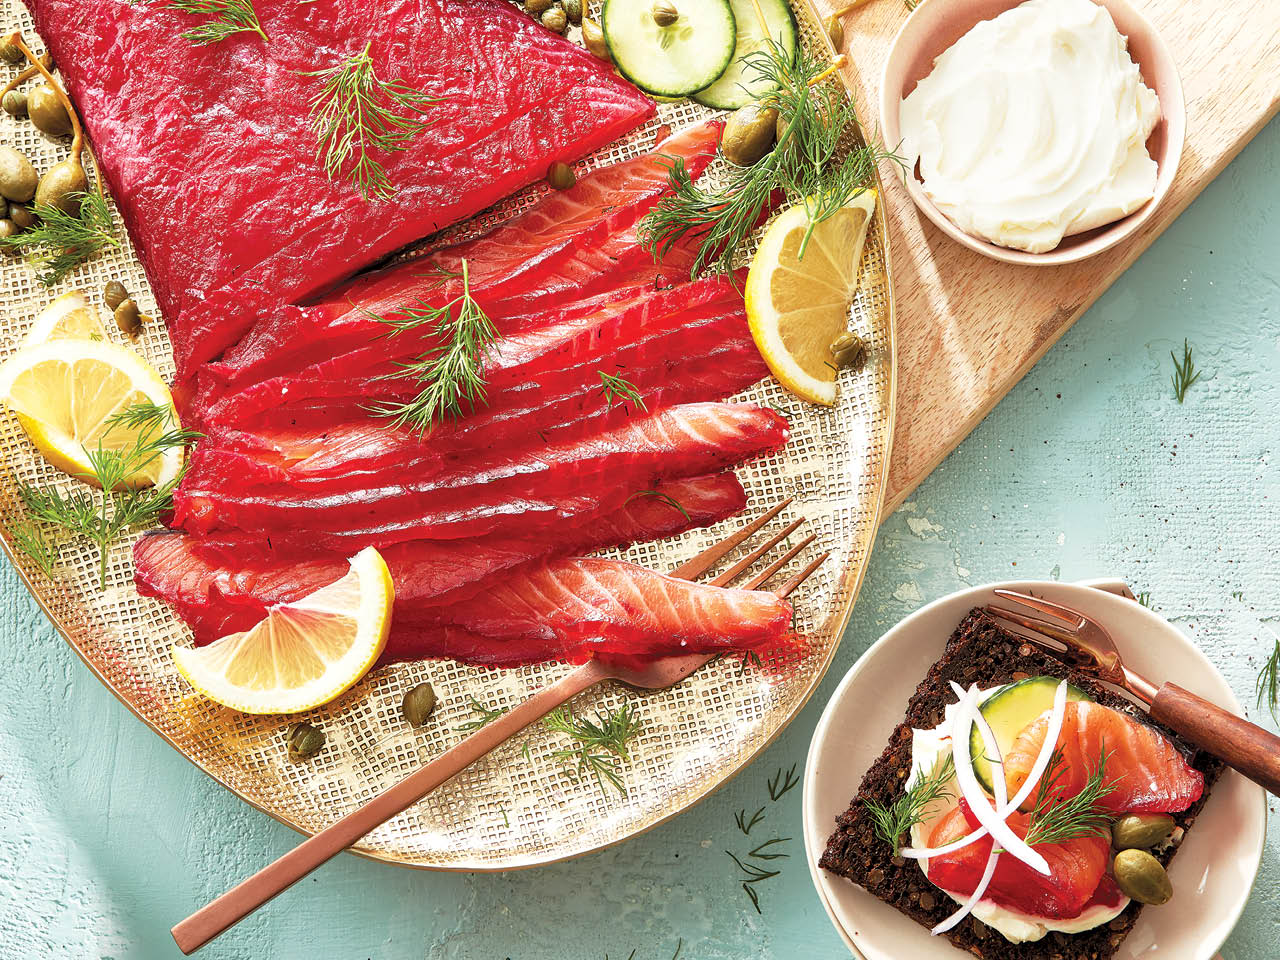 Beet-cured salmon gravlax